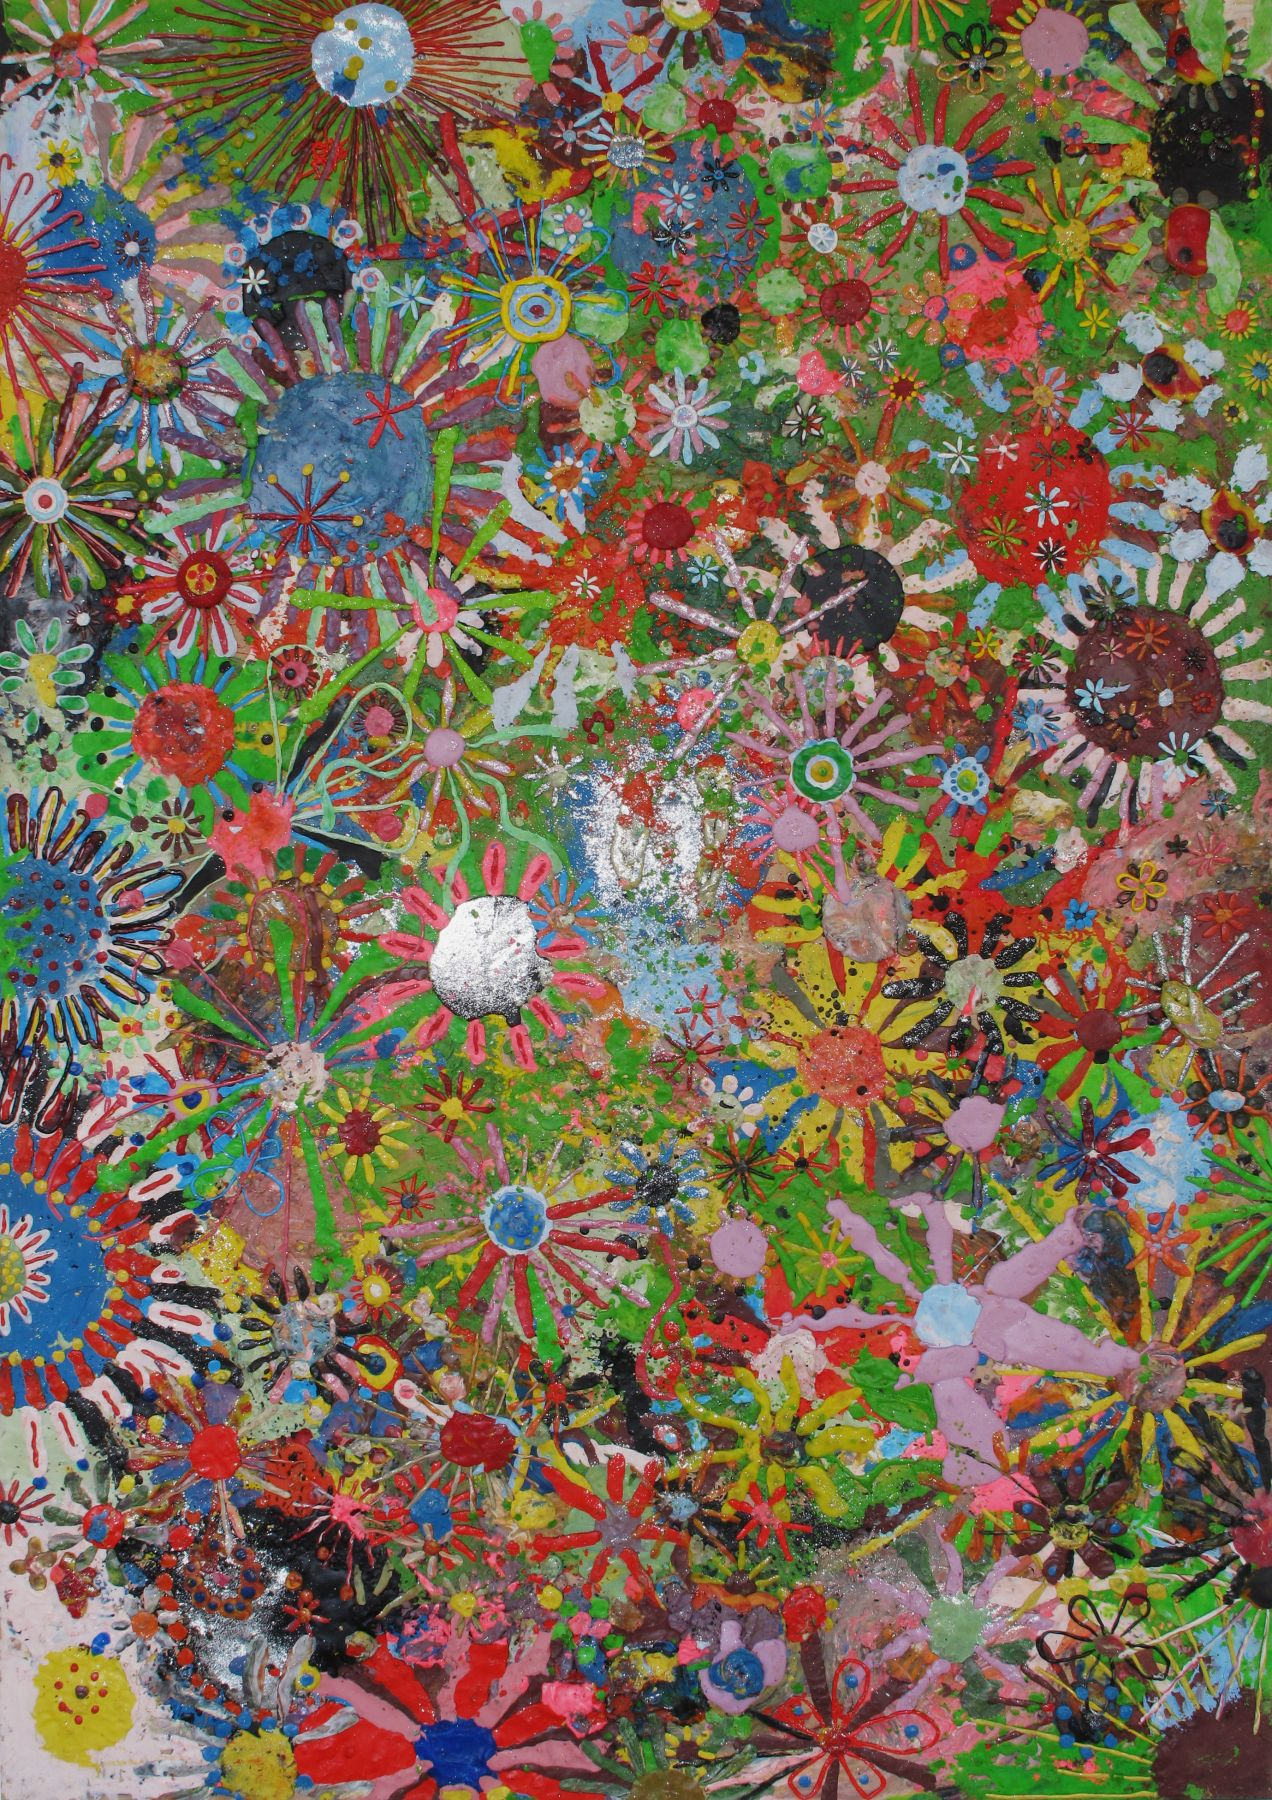 Gelitin Flower painting 2009  plasticine on wood panel 75 x 53 x 3/4 inches